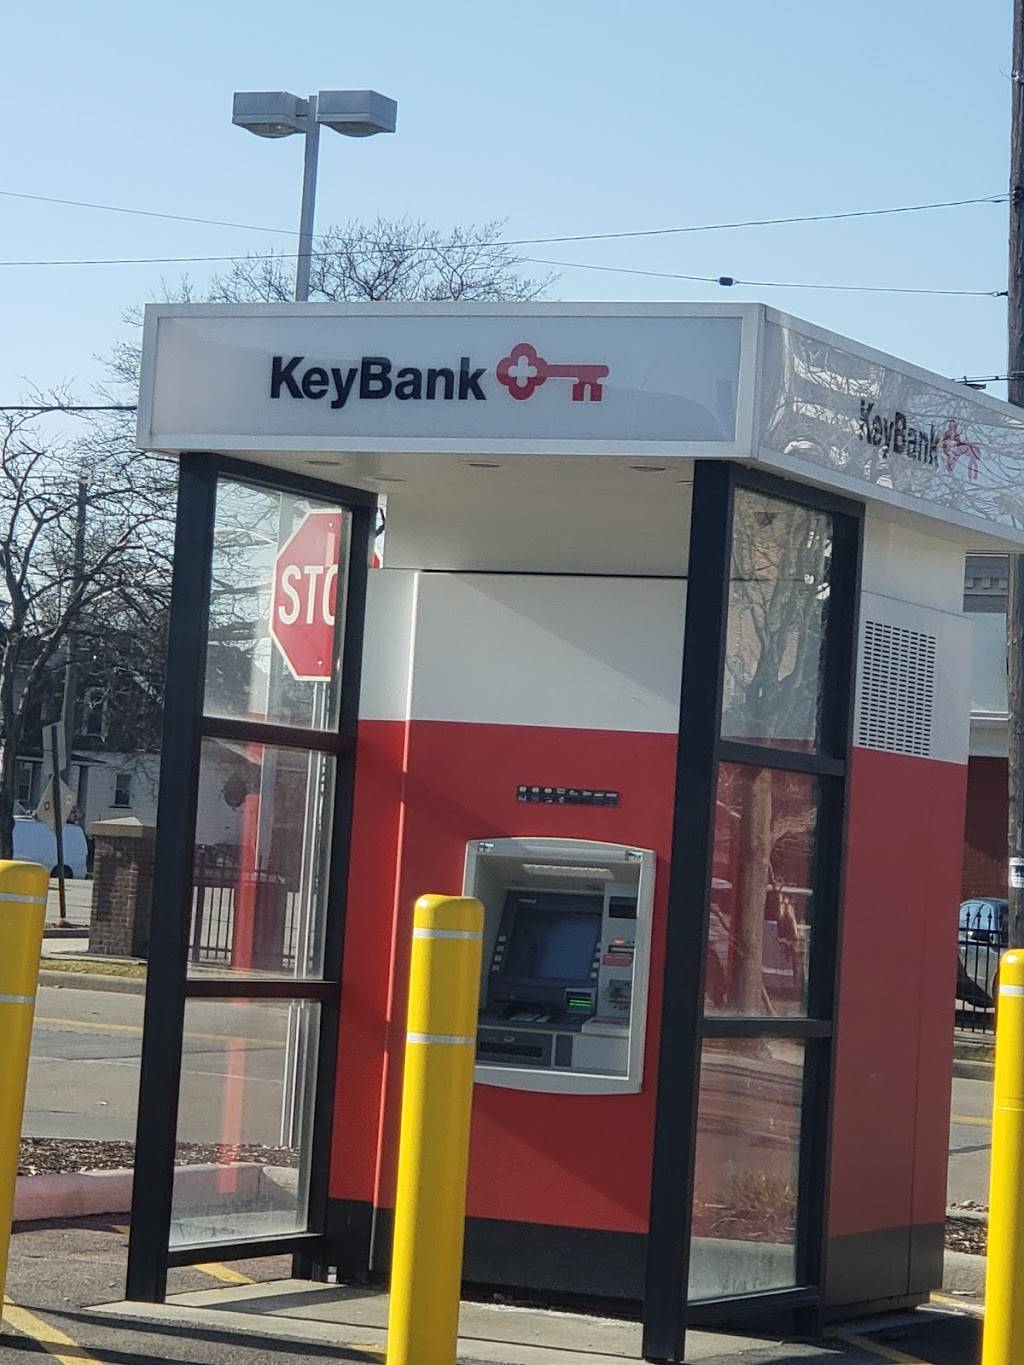 KeyBank ATM - atm  | Photo 1 of 1 | Address: 1231 W 117th St, Cleveland, OH 44102, USA | Phone: (800) 539-2968